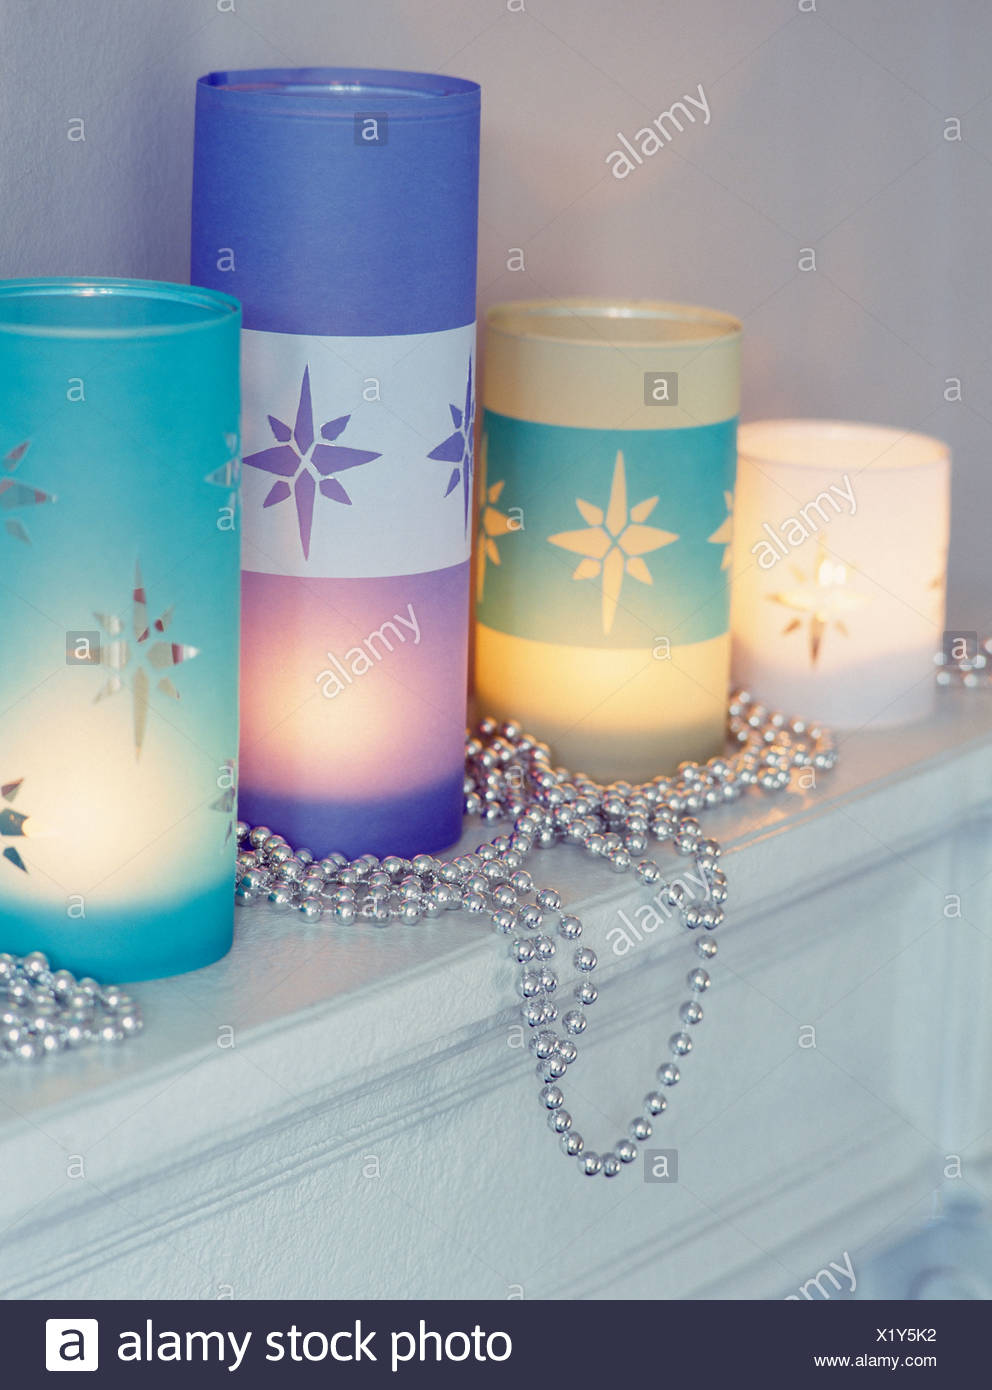 Close-up of etched glass candle holders with lighted candles - Stock Image